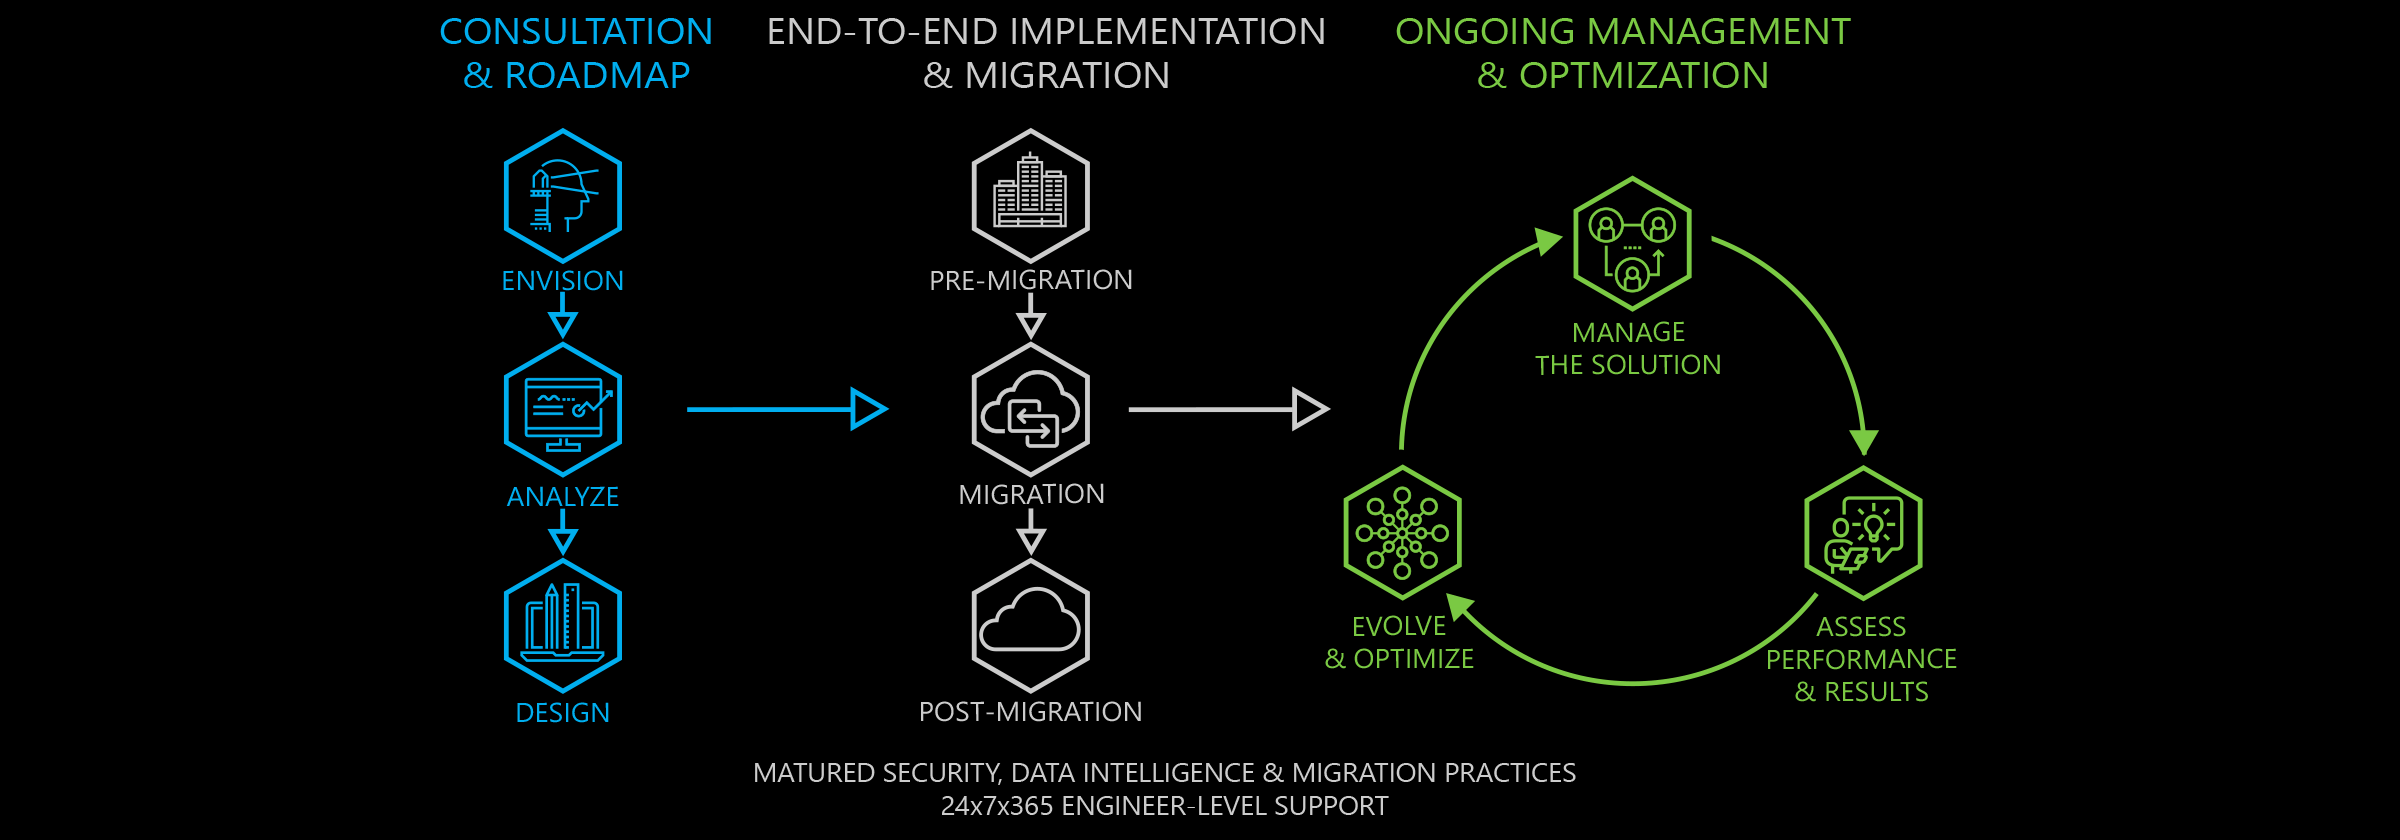 Matured Security, Data Intelligence & Migration Practices